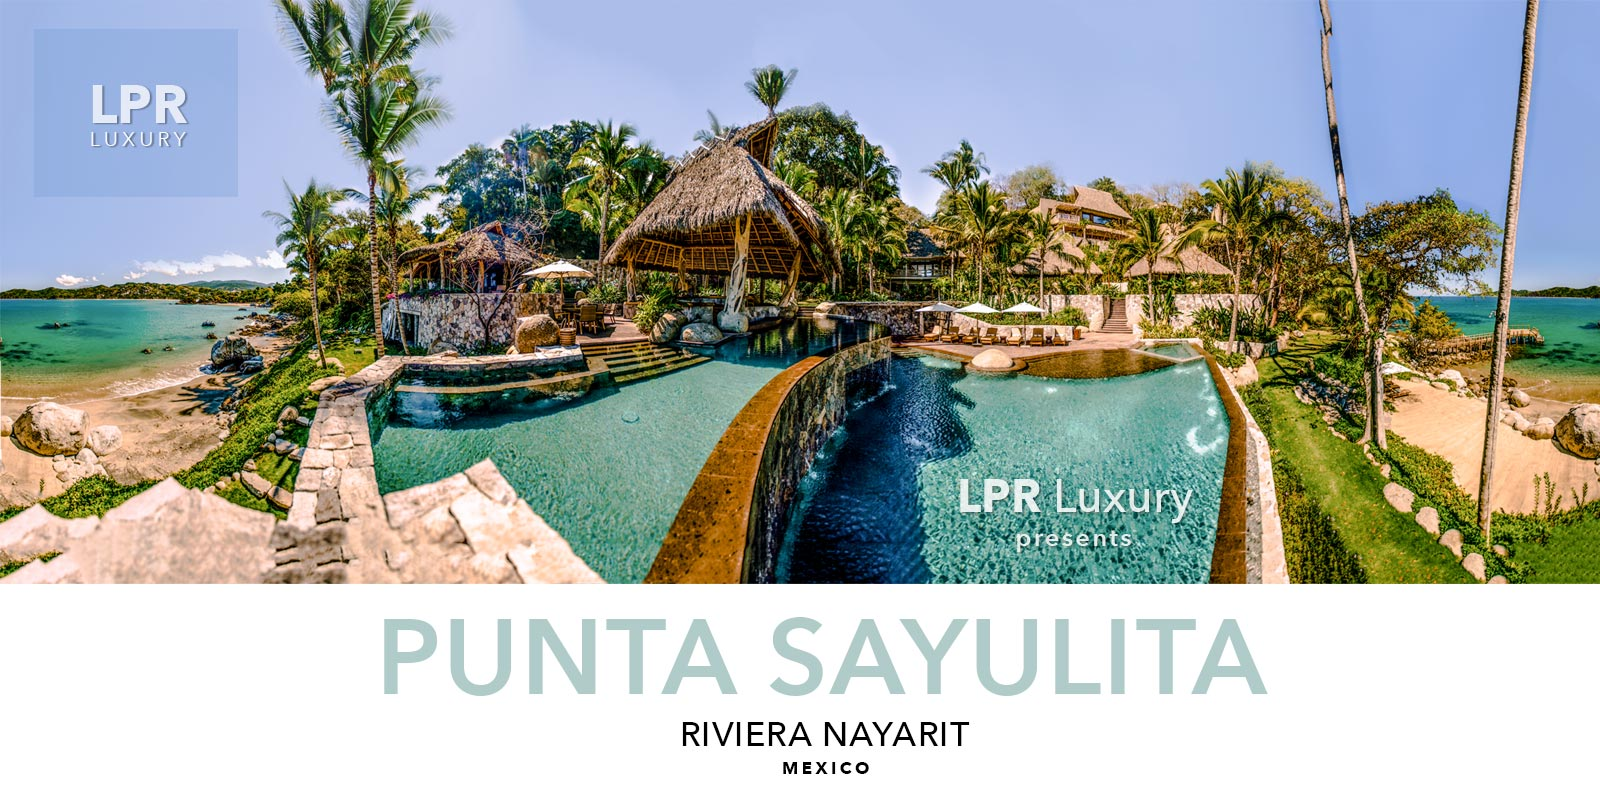 Punta Sayulita - Luxury Real Estate and Vacation rental villas in Sayulita, Riviera Nayarit, Mexico - North of Puerto Vallarta.